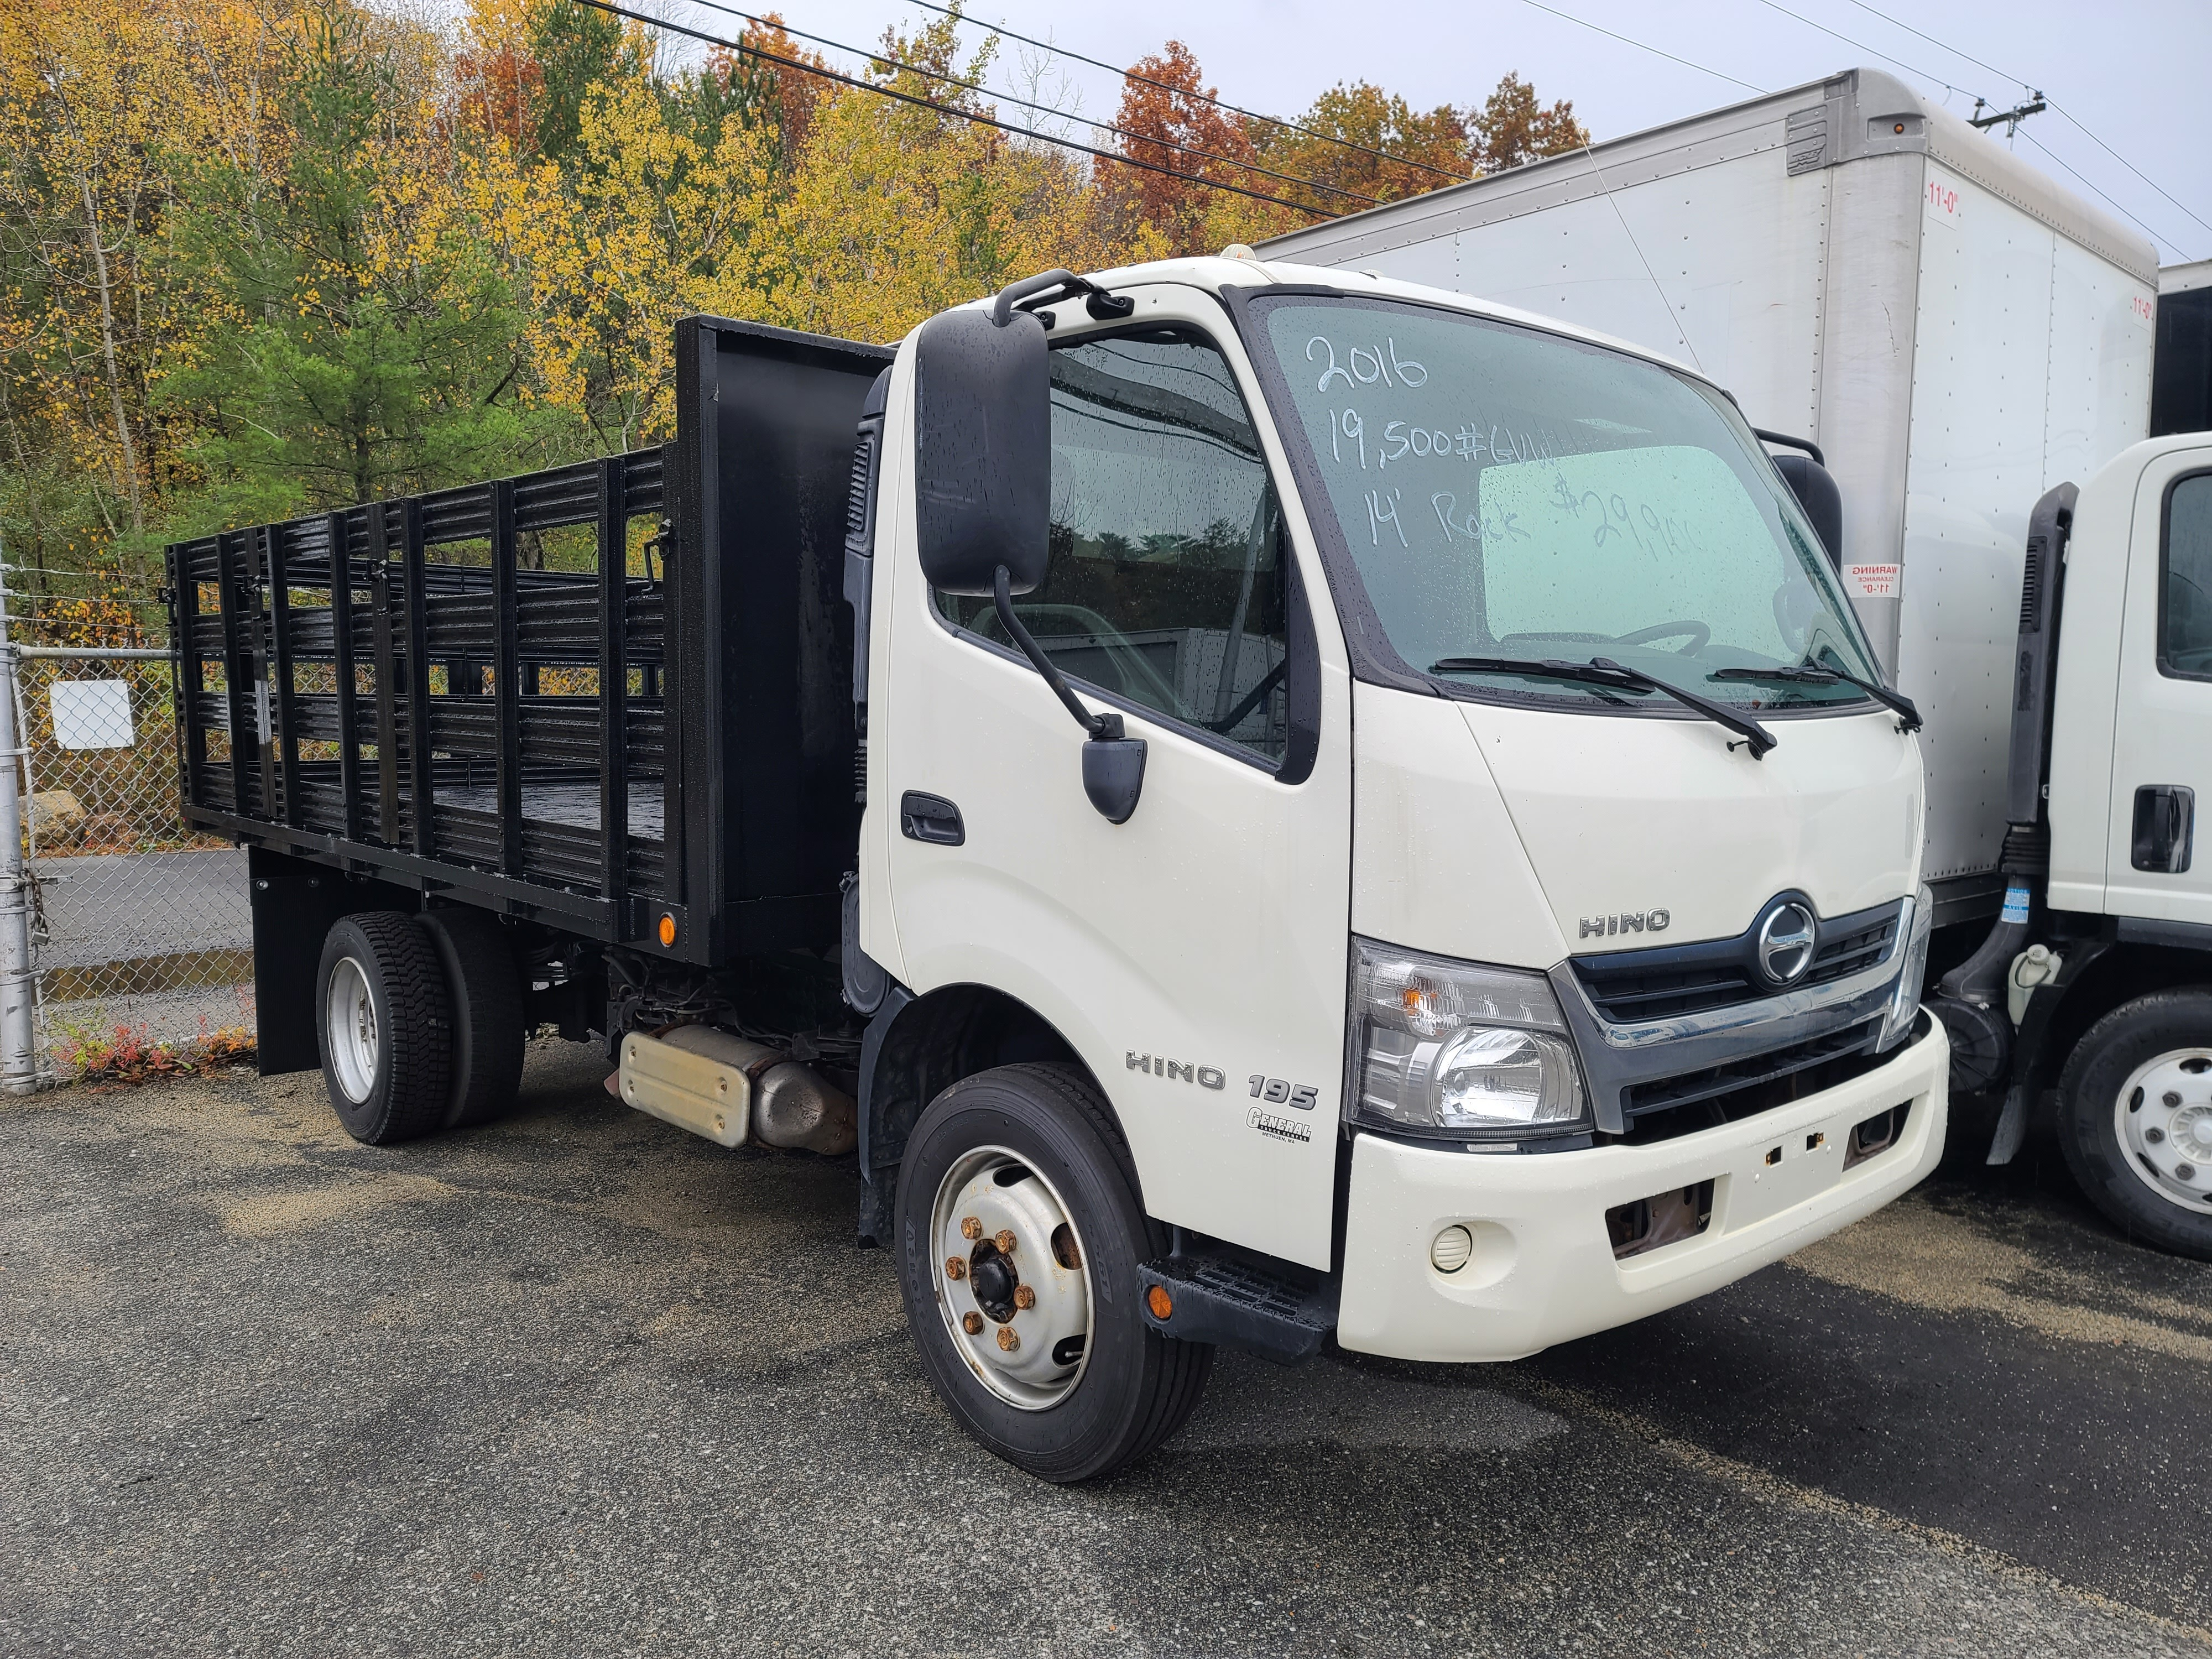 Used, 2016, Hino, 195, Cab / Chassis Trucks